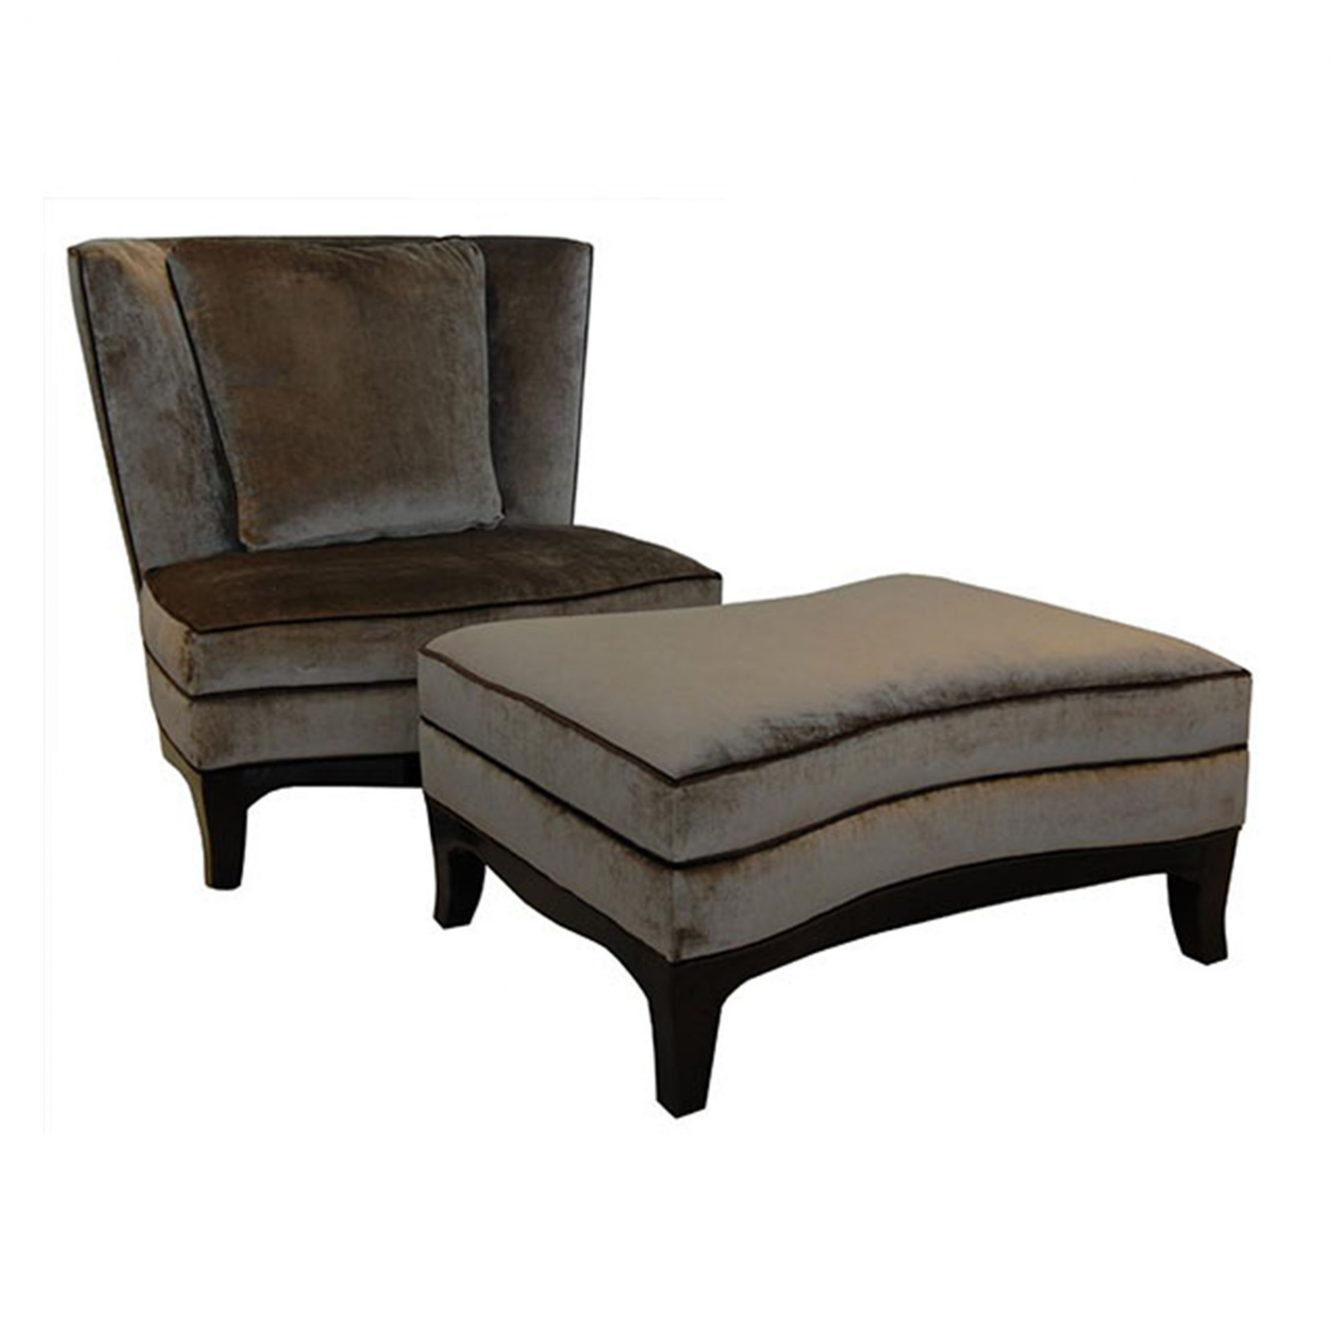 House Haven Occasional Chairs 0004 Geneva Chair w Ottomon